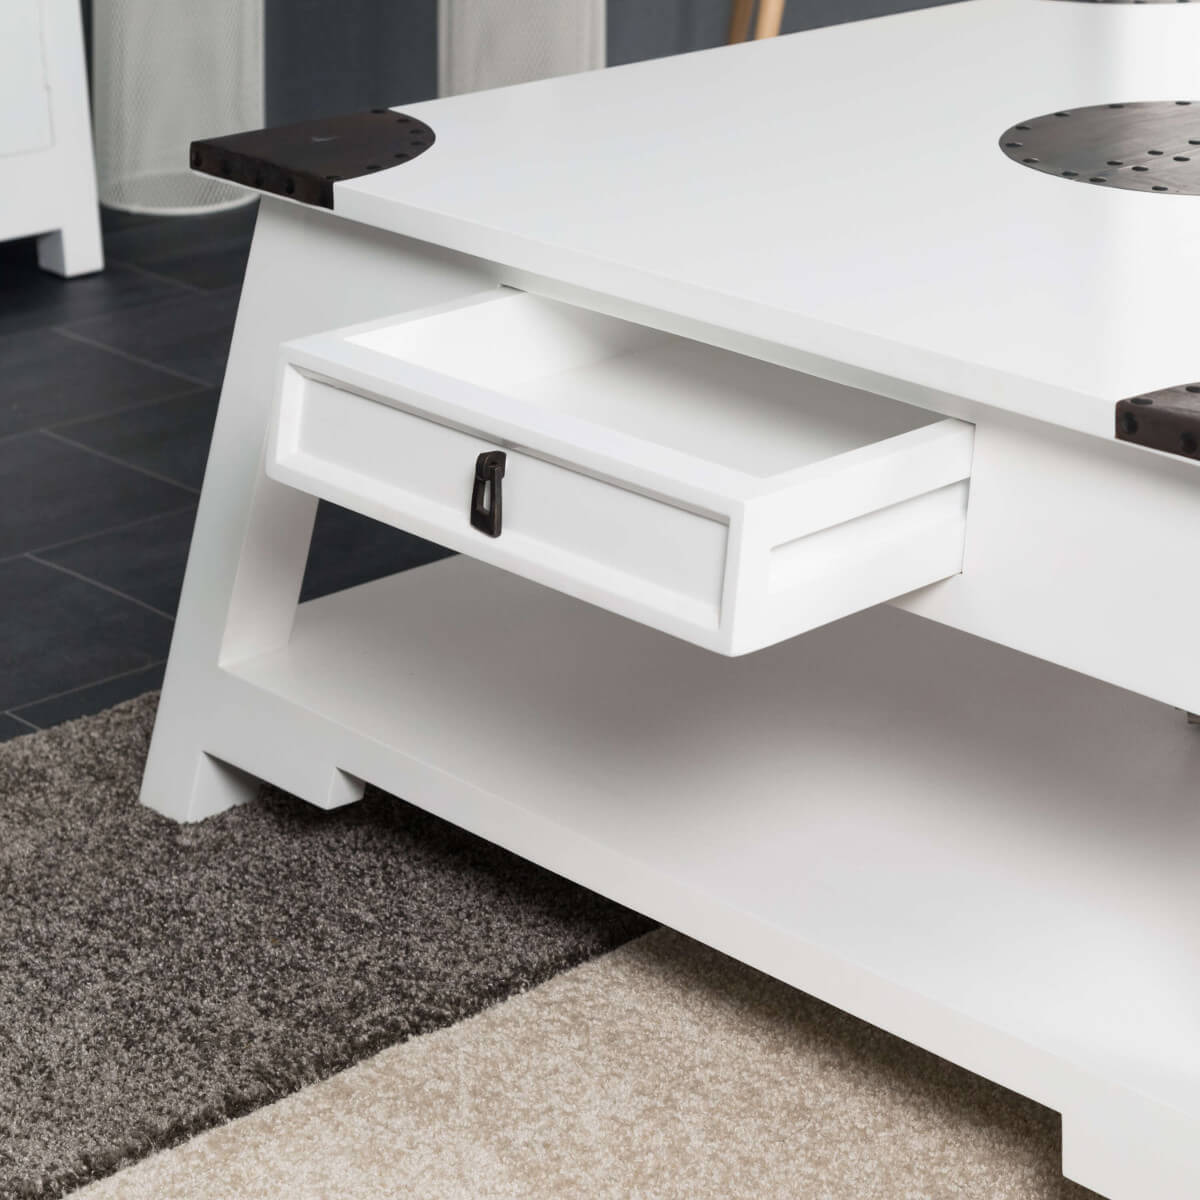 Table basse acajou bois massif carr e blanche thao 85 cm for Table basse 85 cm